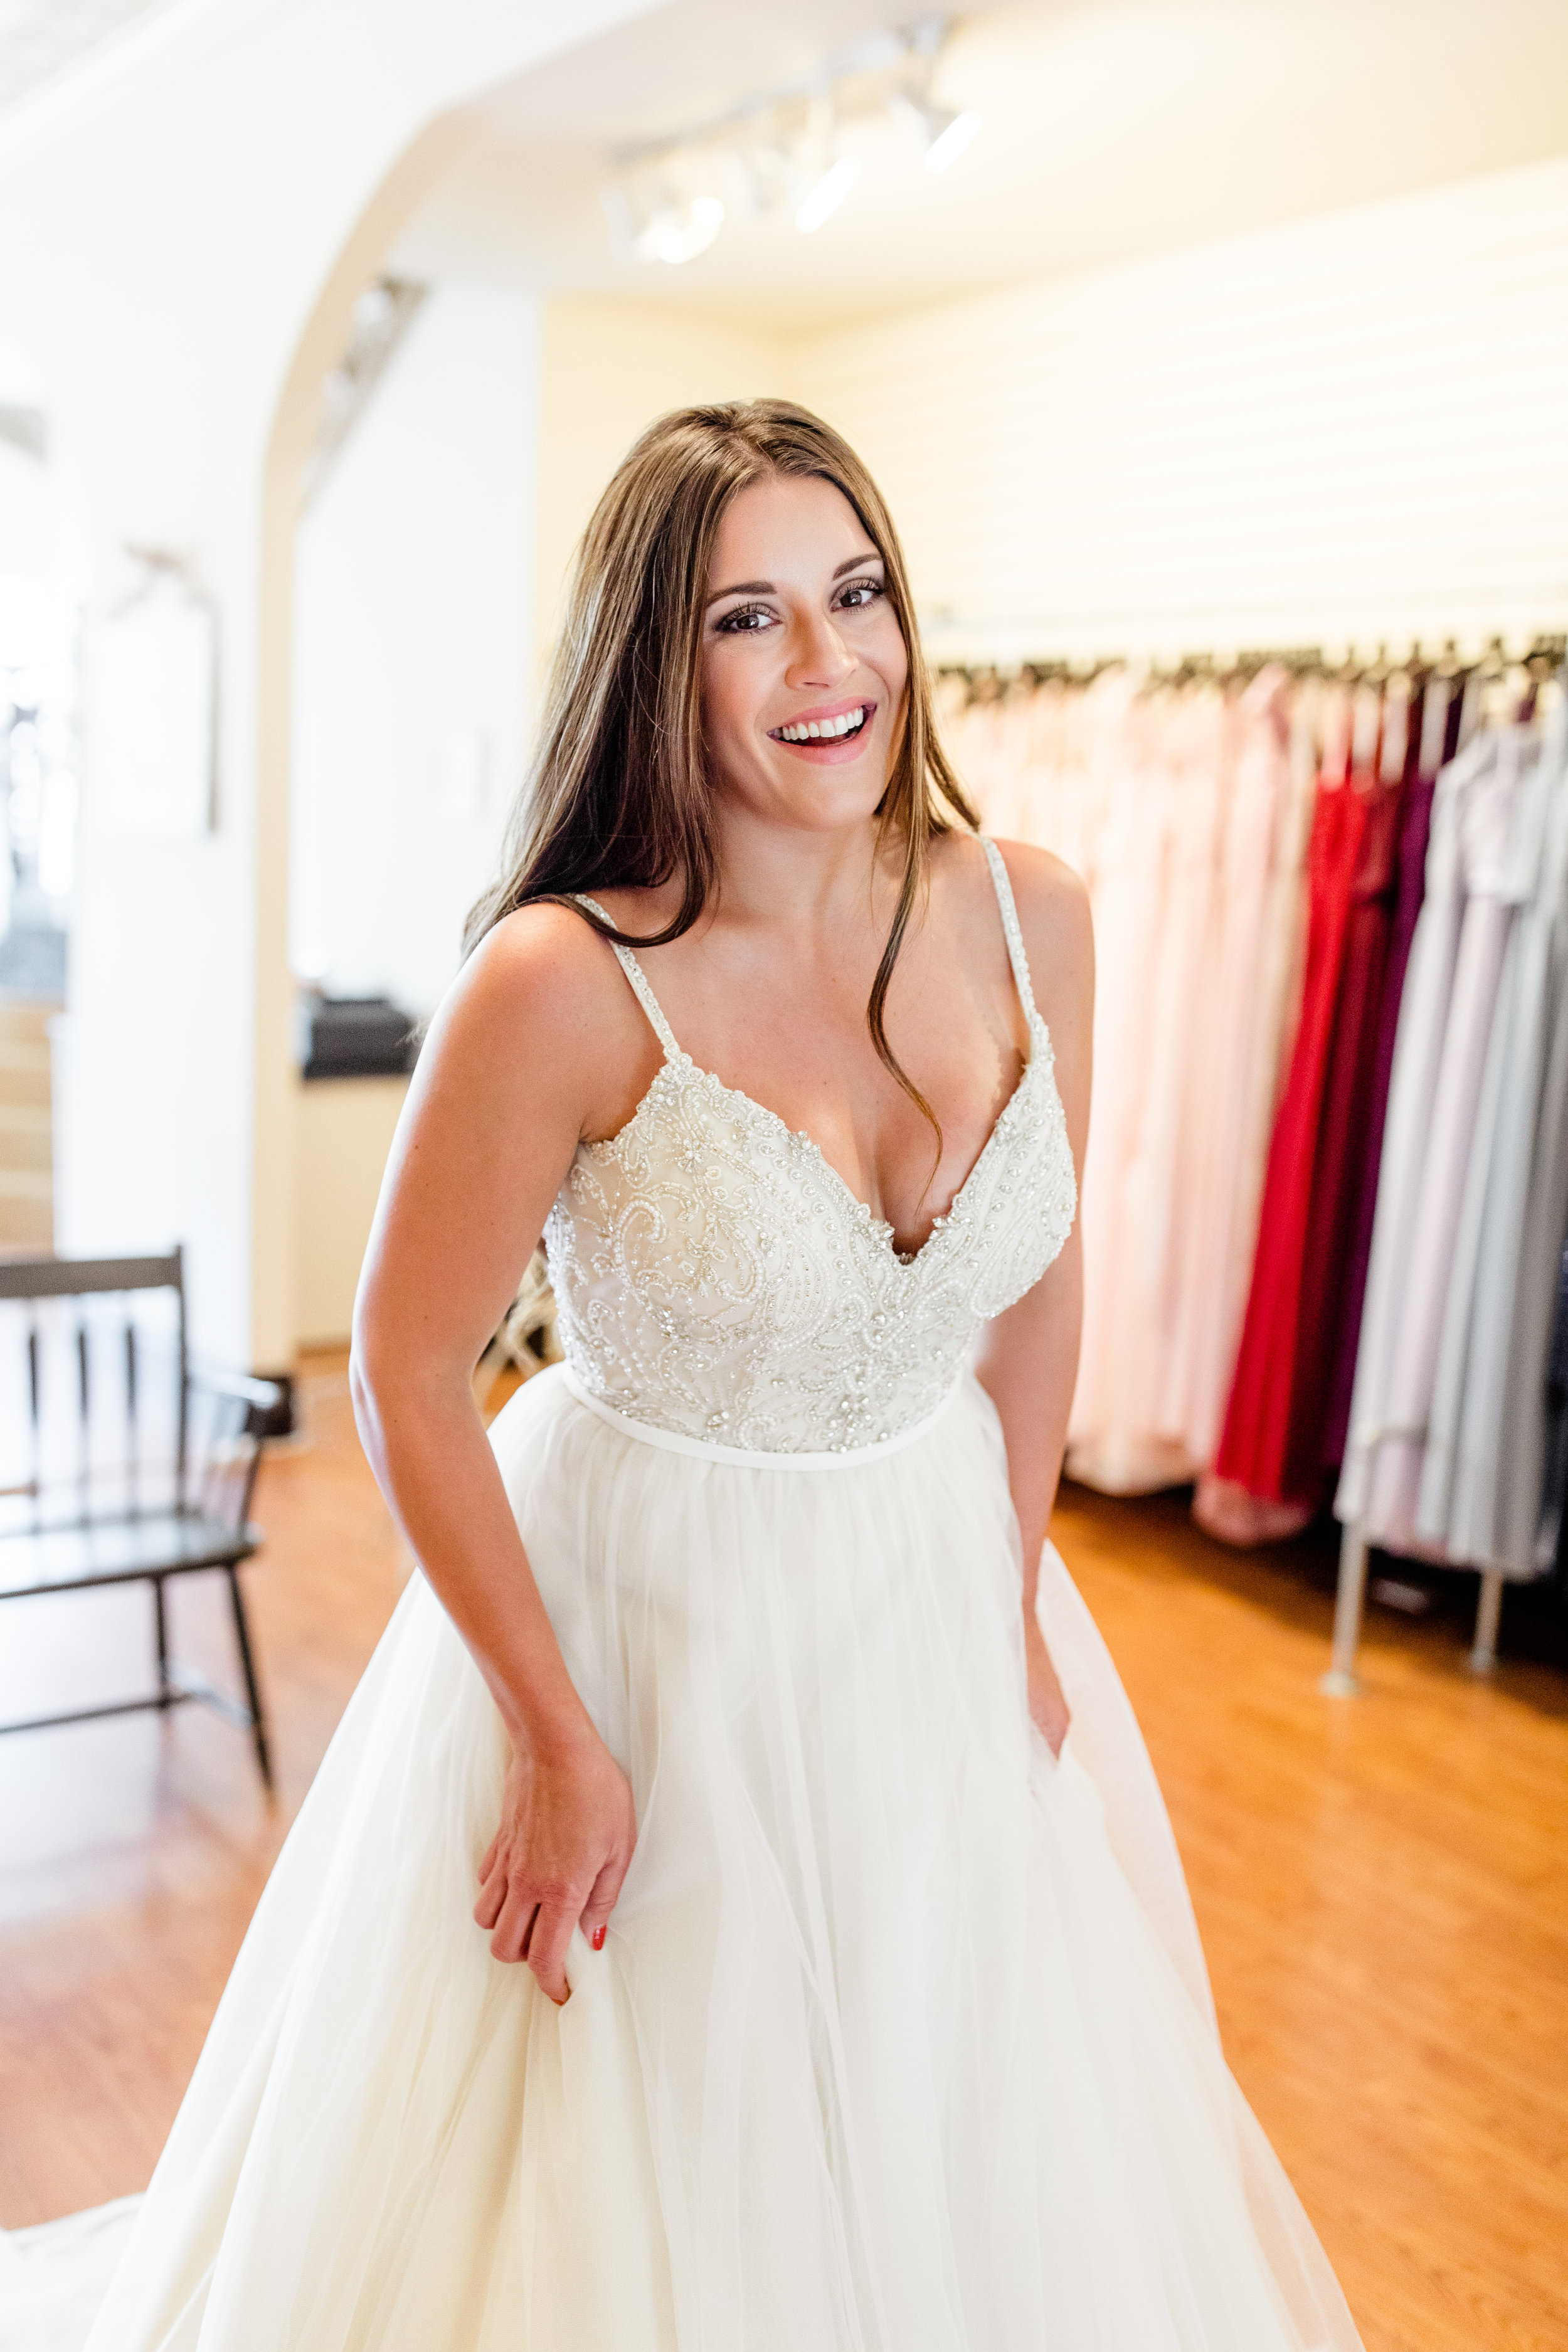 Seriously......how does one look so pretty?!?!?! In a White Weddings Dress, thats how!!!!